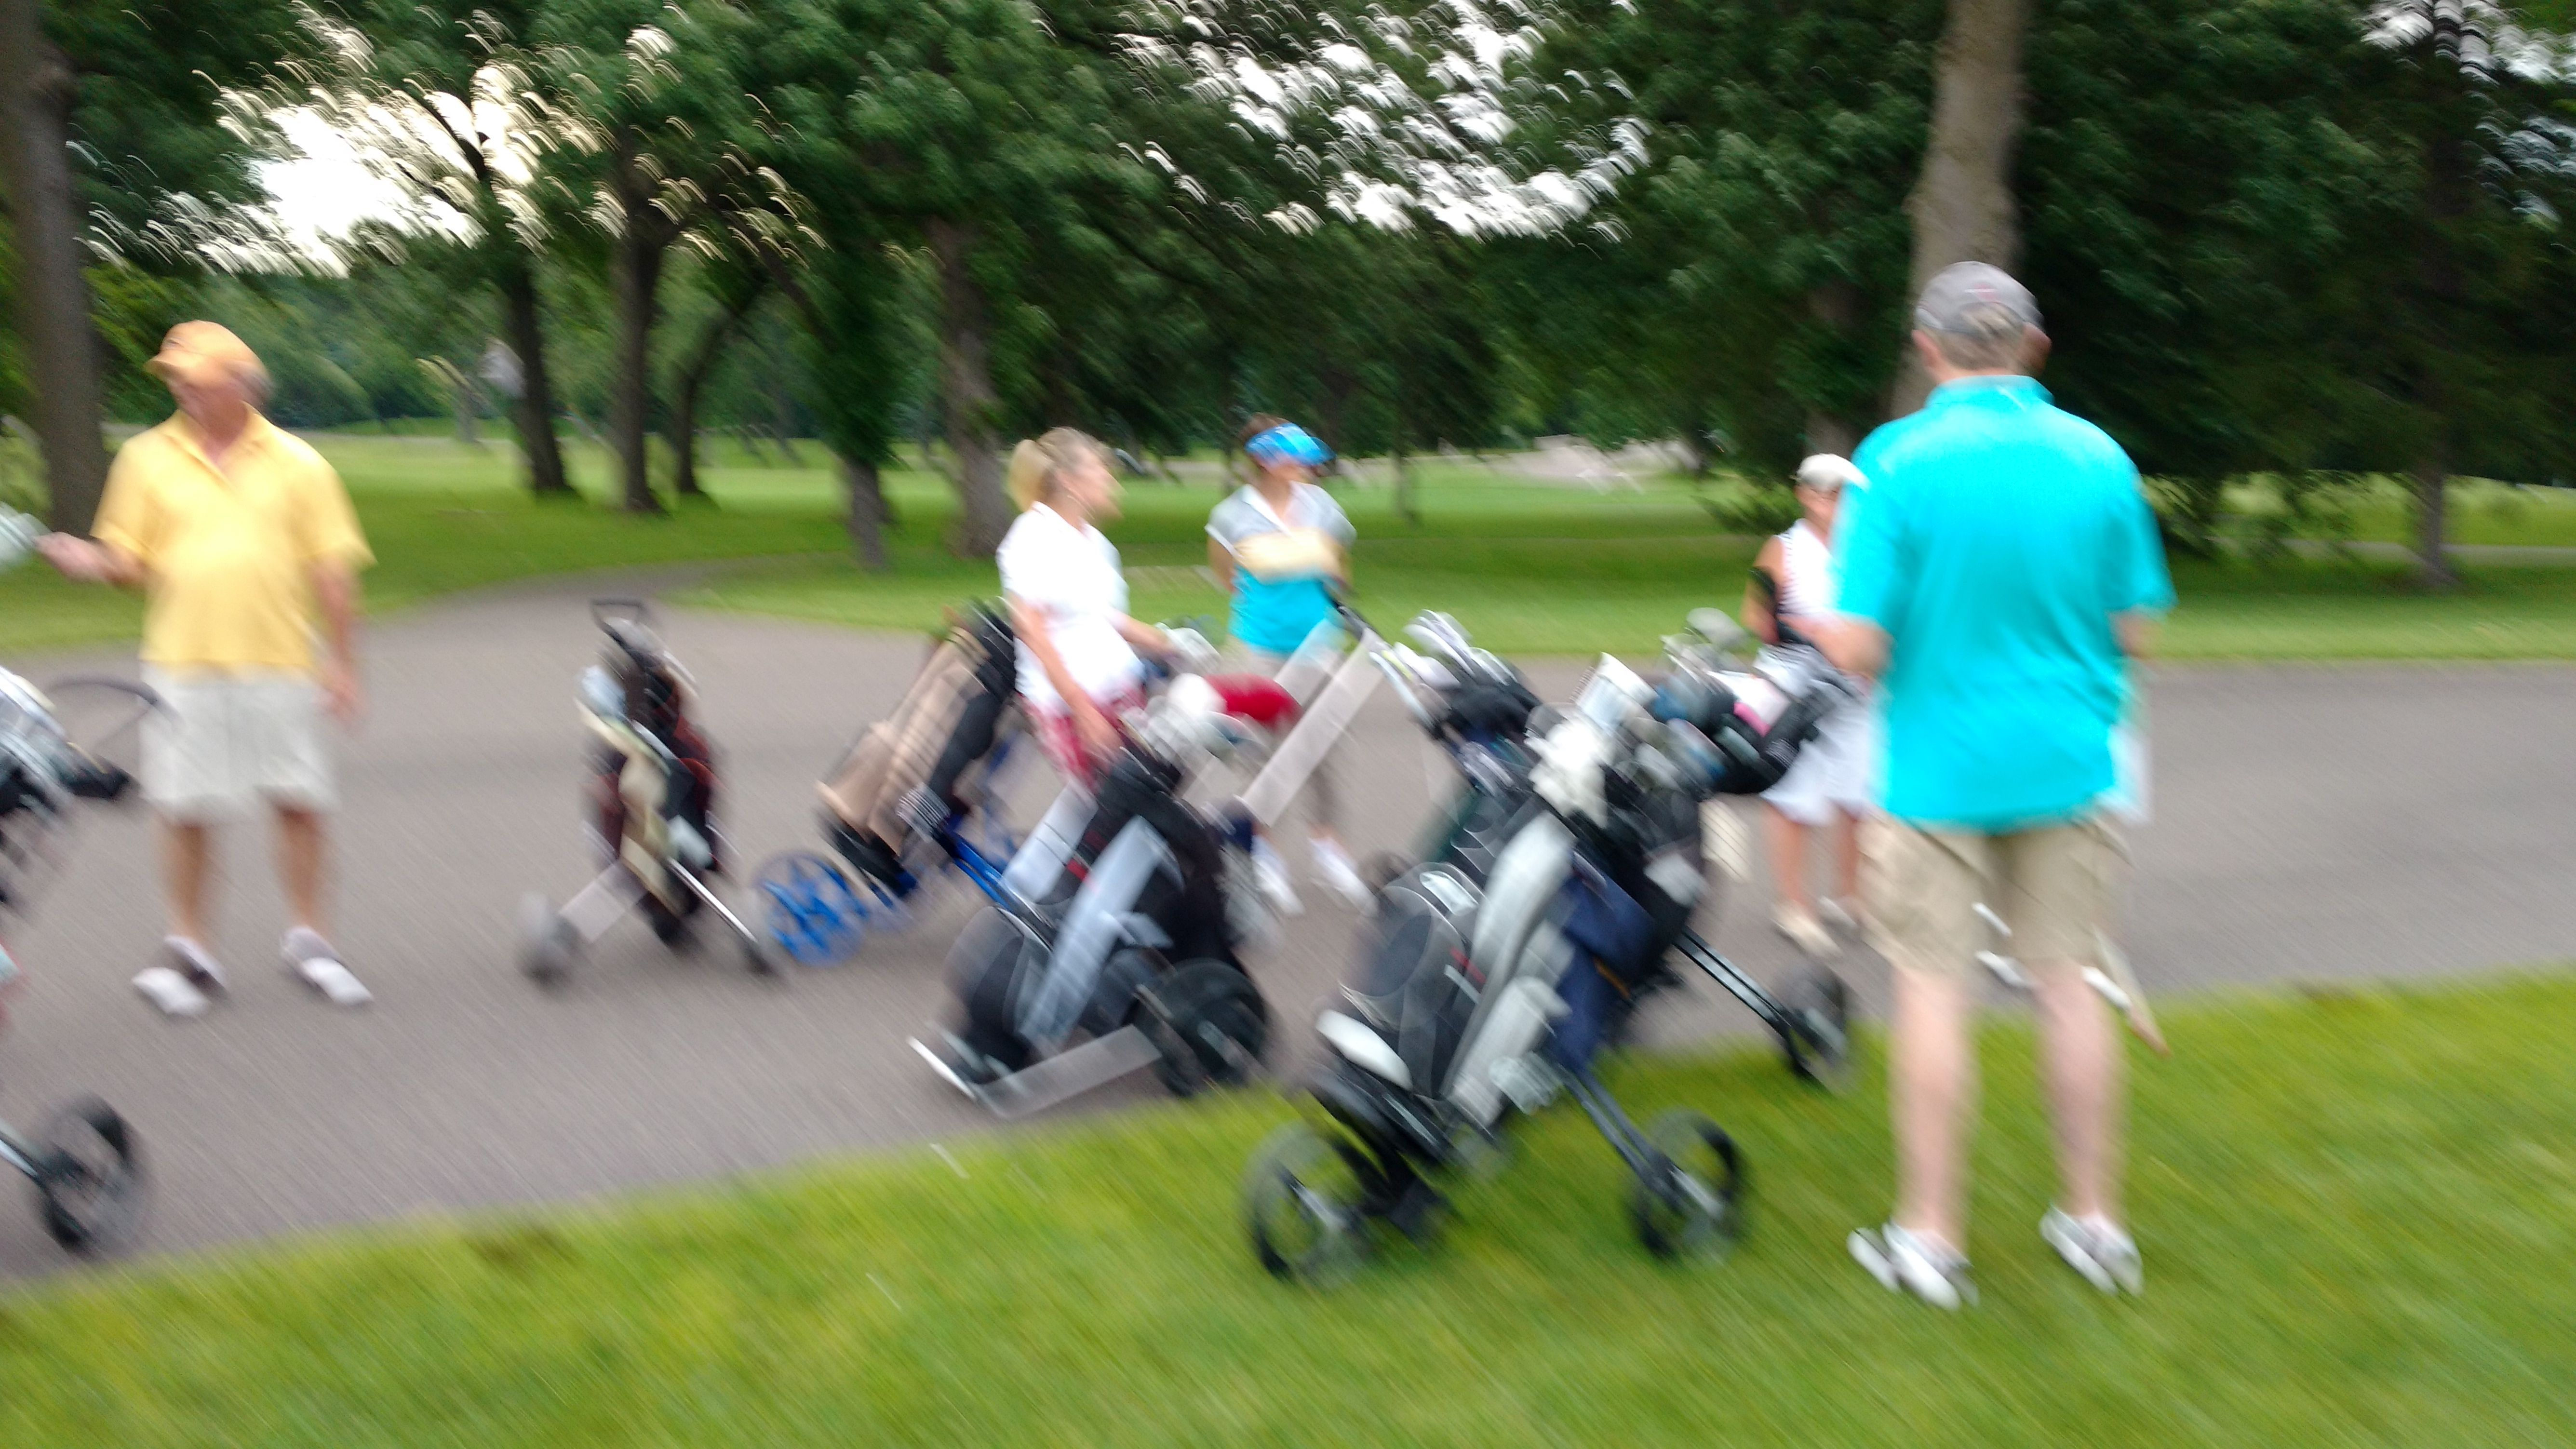 twin city personals Twin cities singles golf association - a well established and active singles organization in the metro area that brings singles together for fun and challenging golf at some of the best courses in the area.